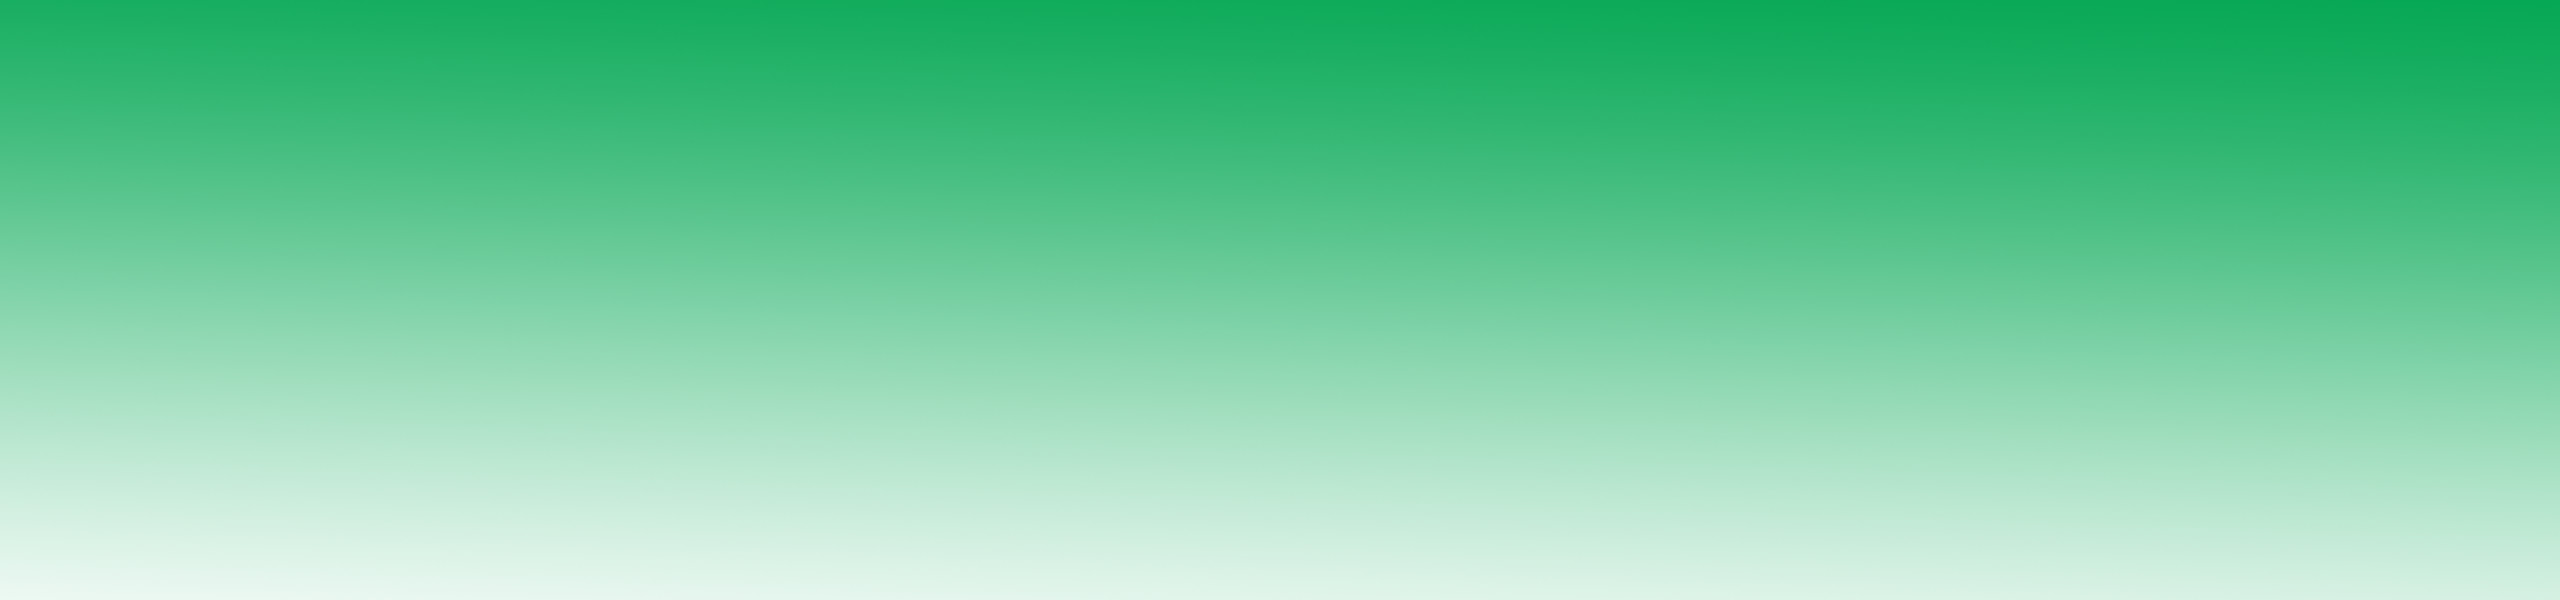 fade green background1